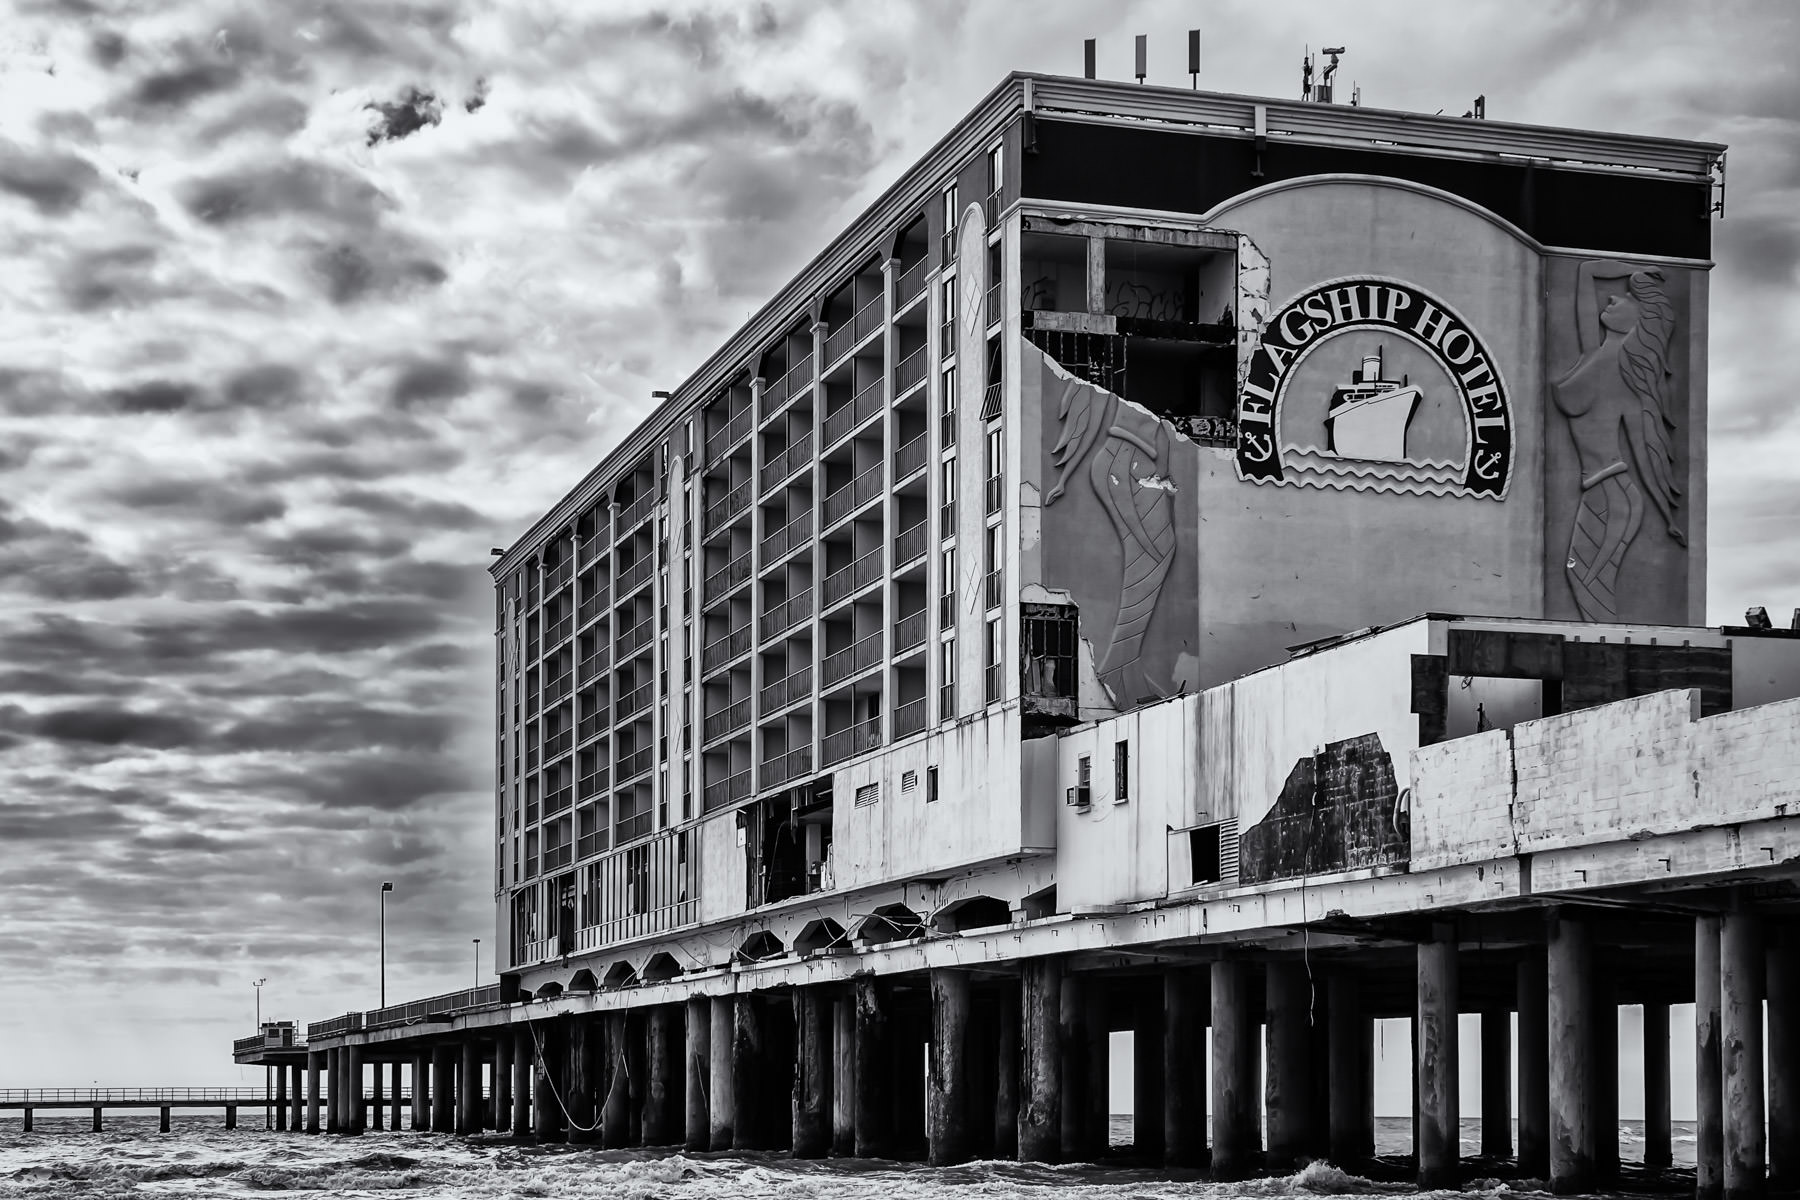 The Flagship Hotel, built on a pier extending from Galveston's Seawall Boulevard out into the Gulf of Mexico, sits damaged and abandoned in the aftermath of Hurricane Ike.